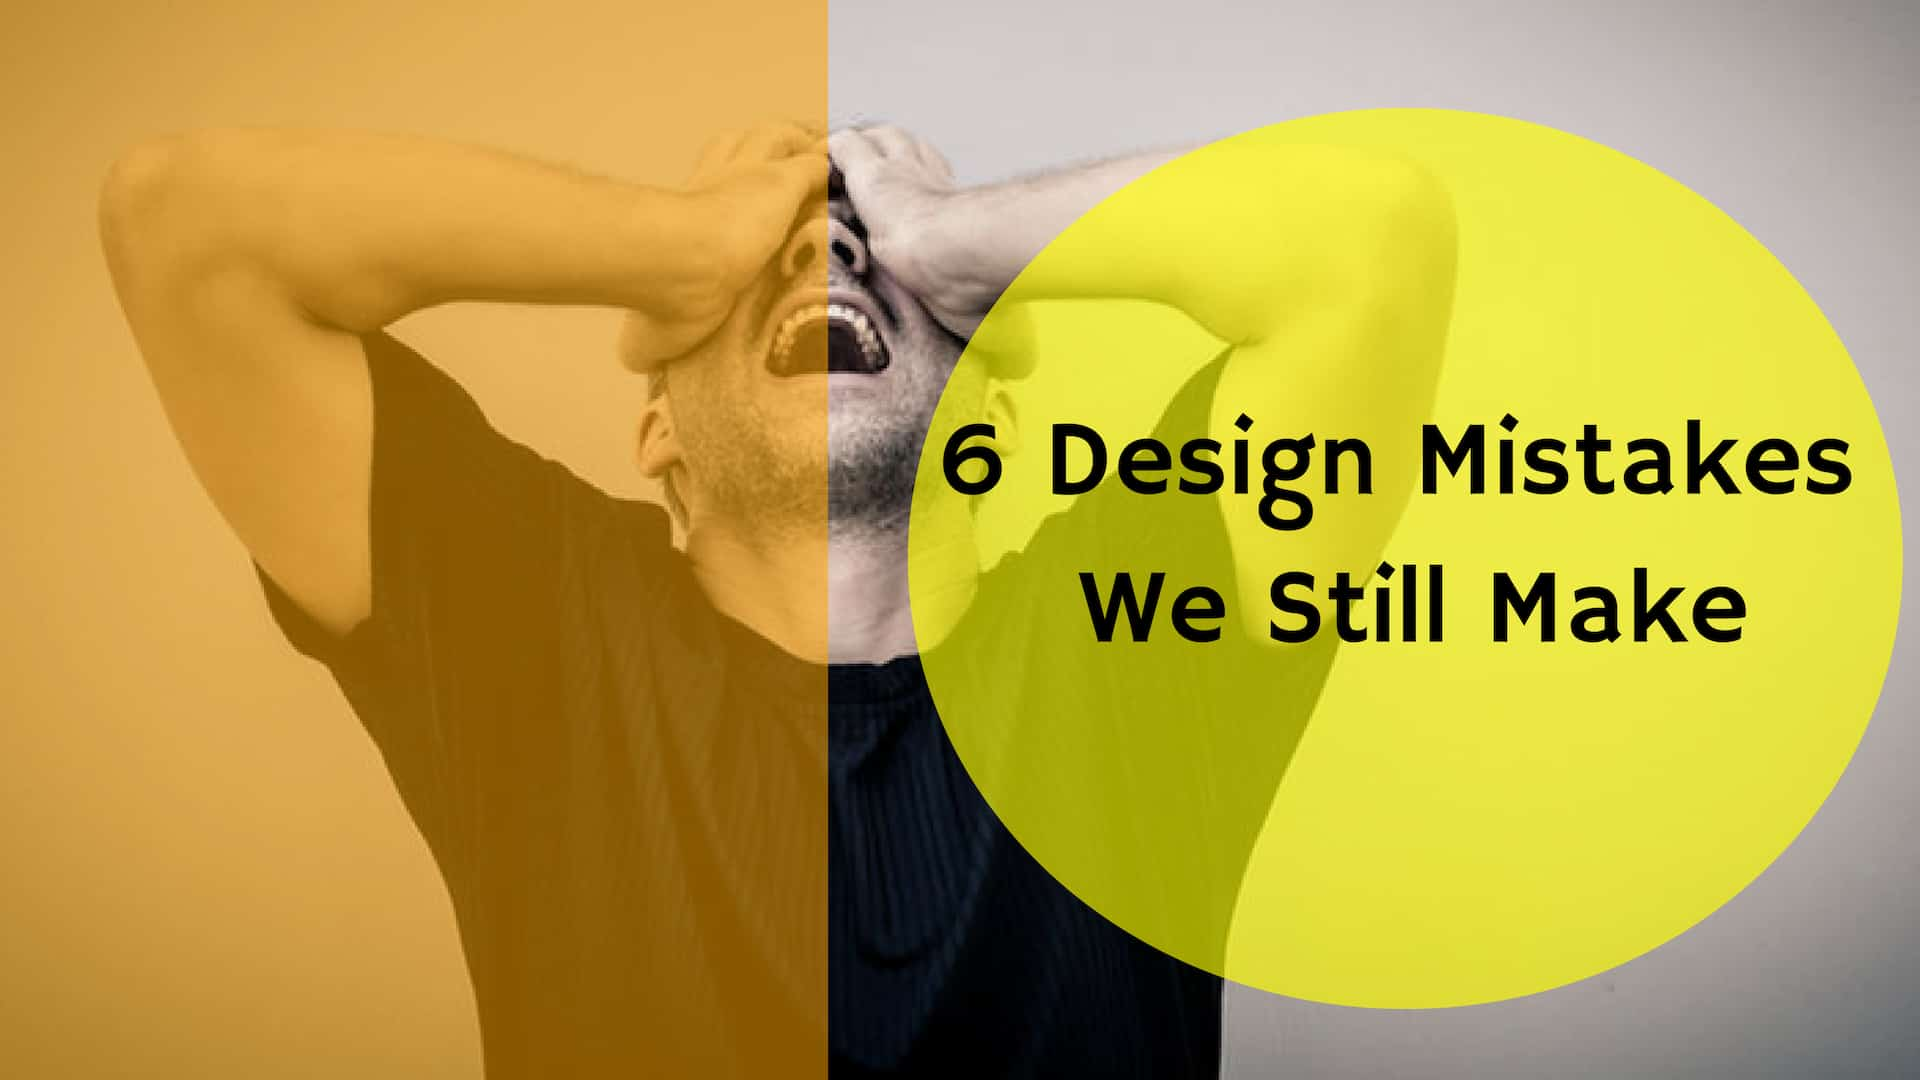 The 6 Design Mistakes We Still Make